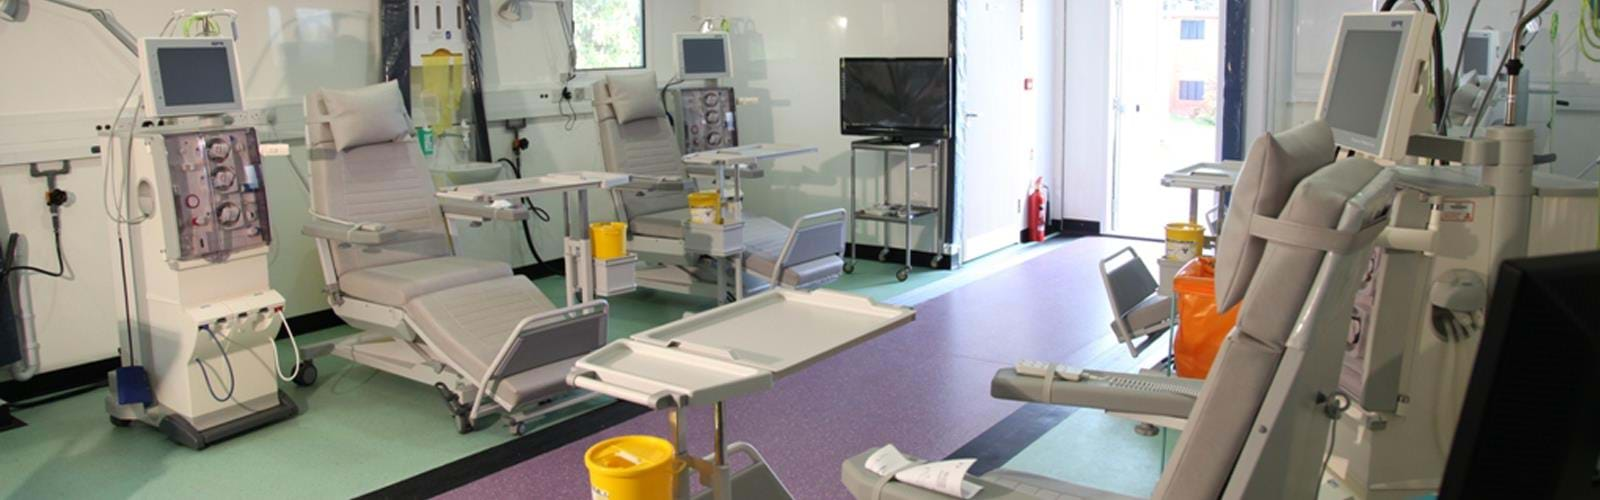 Mobile Renal Dialysis Unit NHS Wales (7)